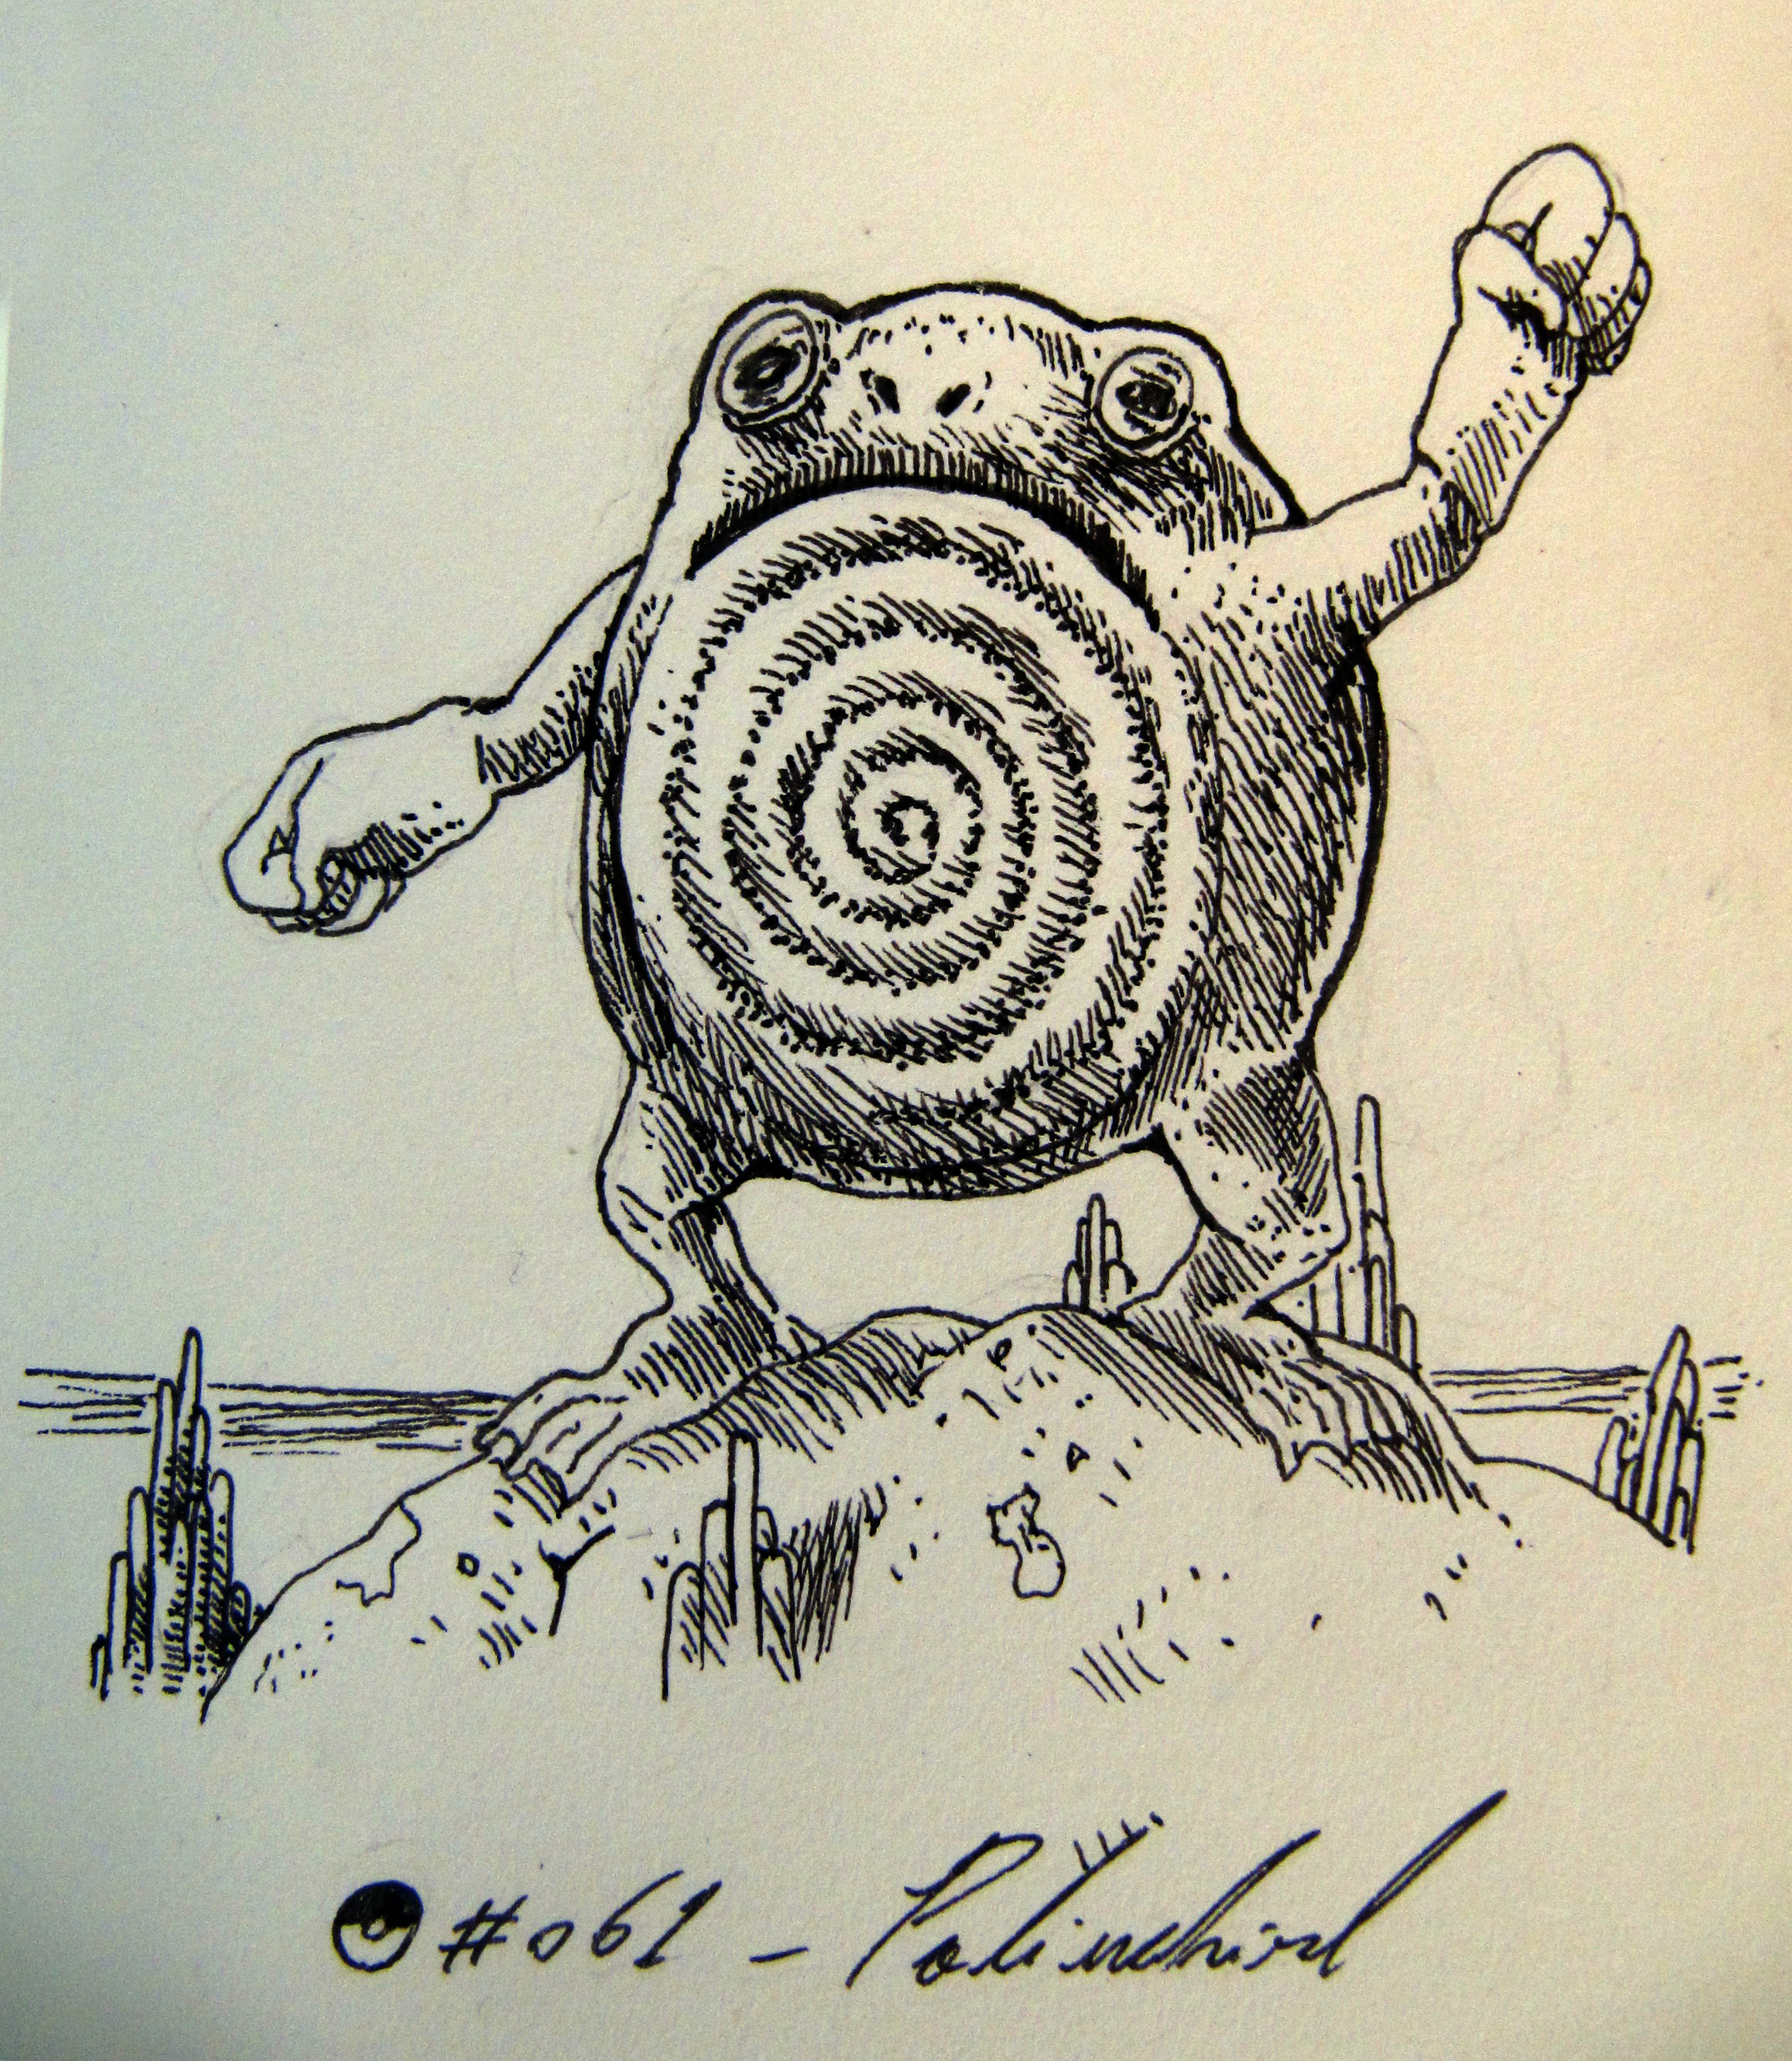 #061_Poliwhirl